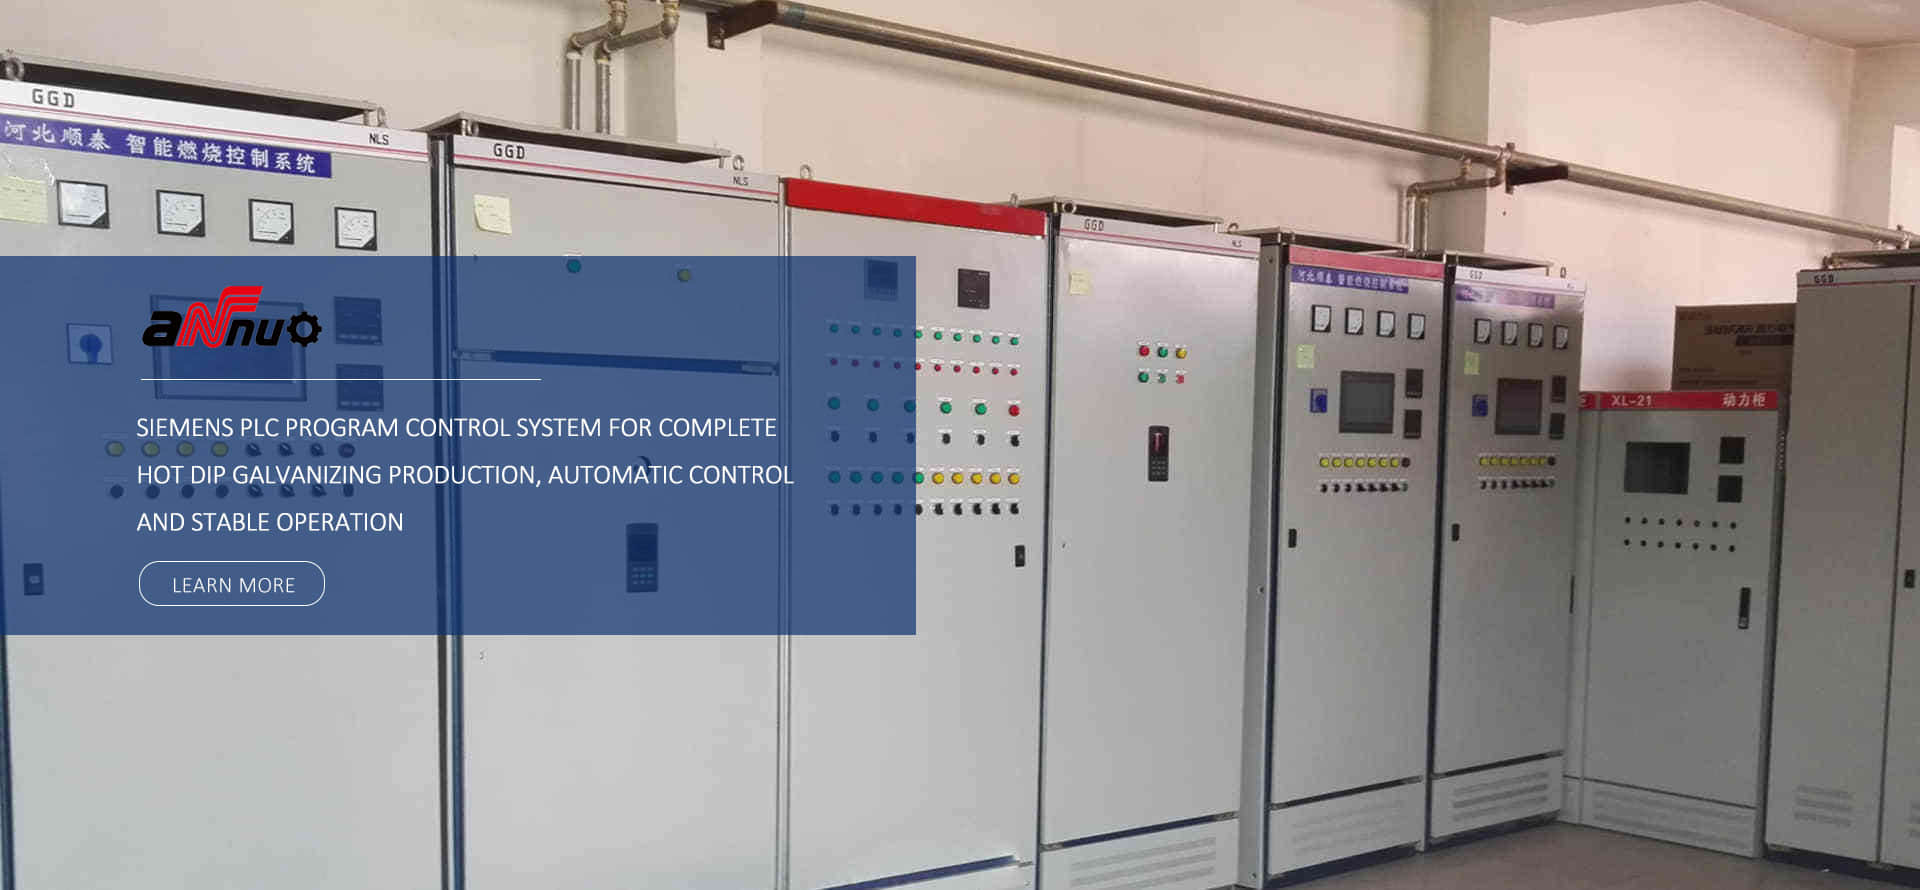 Siemens PLC Program Control system for complete hot dip galvanizing Production, automatic control and stable operation